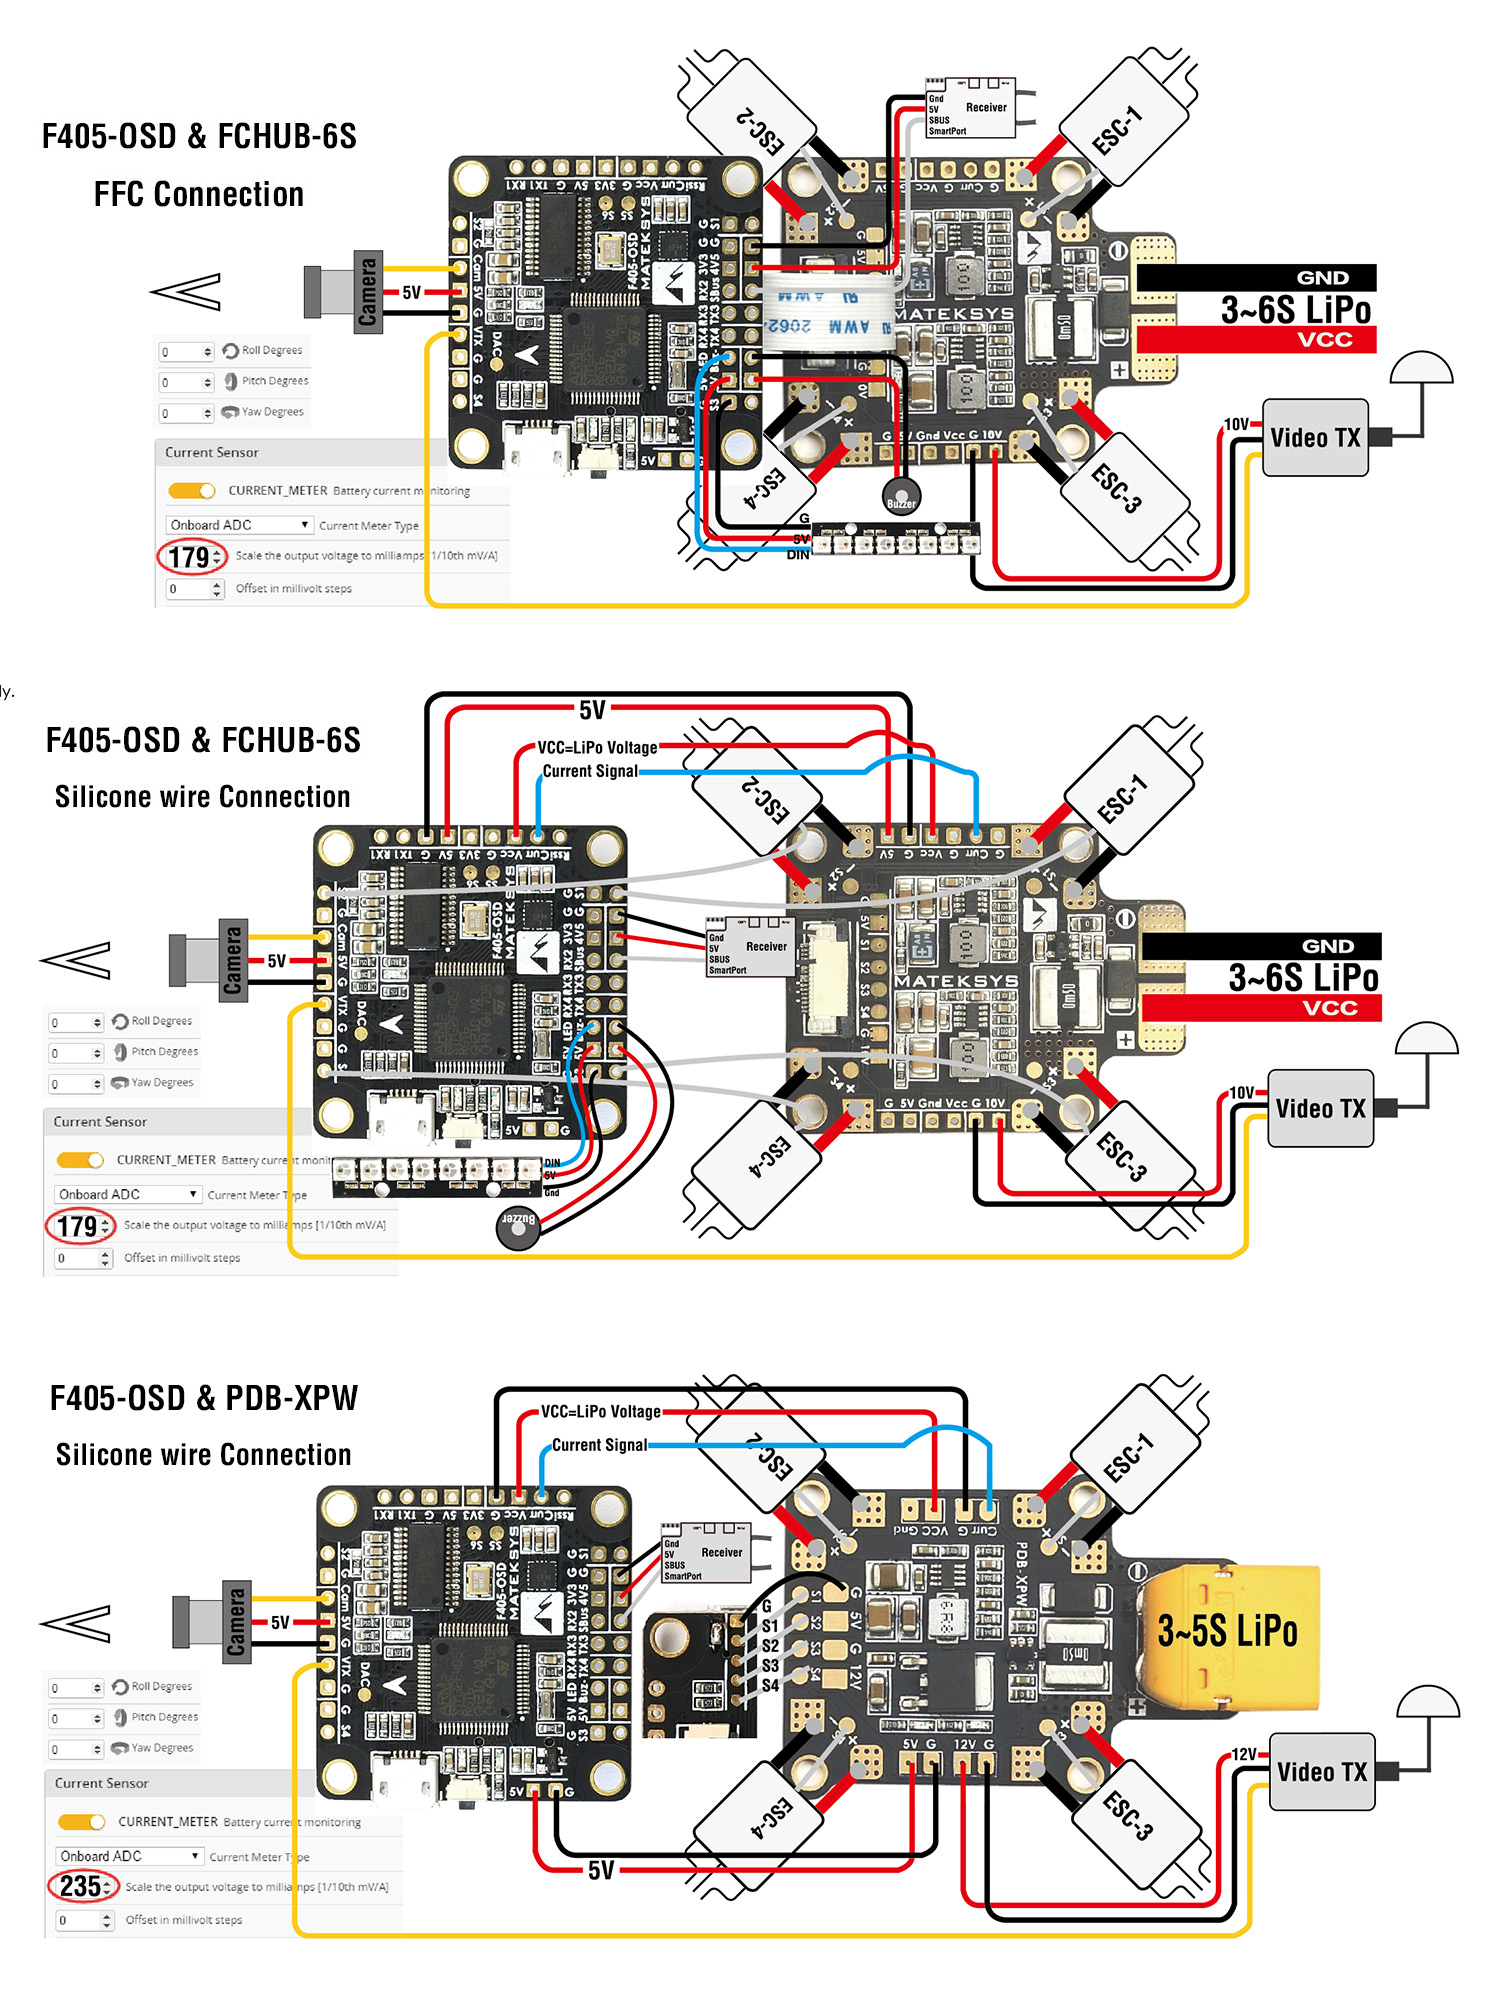 Diagram Ed D A Fe E C F F likewise Raspberrypi Dht Oled besides Lumenier F Aio Flight Controller Diagram likewise Px Gt Wiring furthermore Ej. on sd sensor wiring diagram